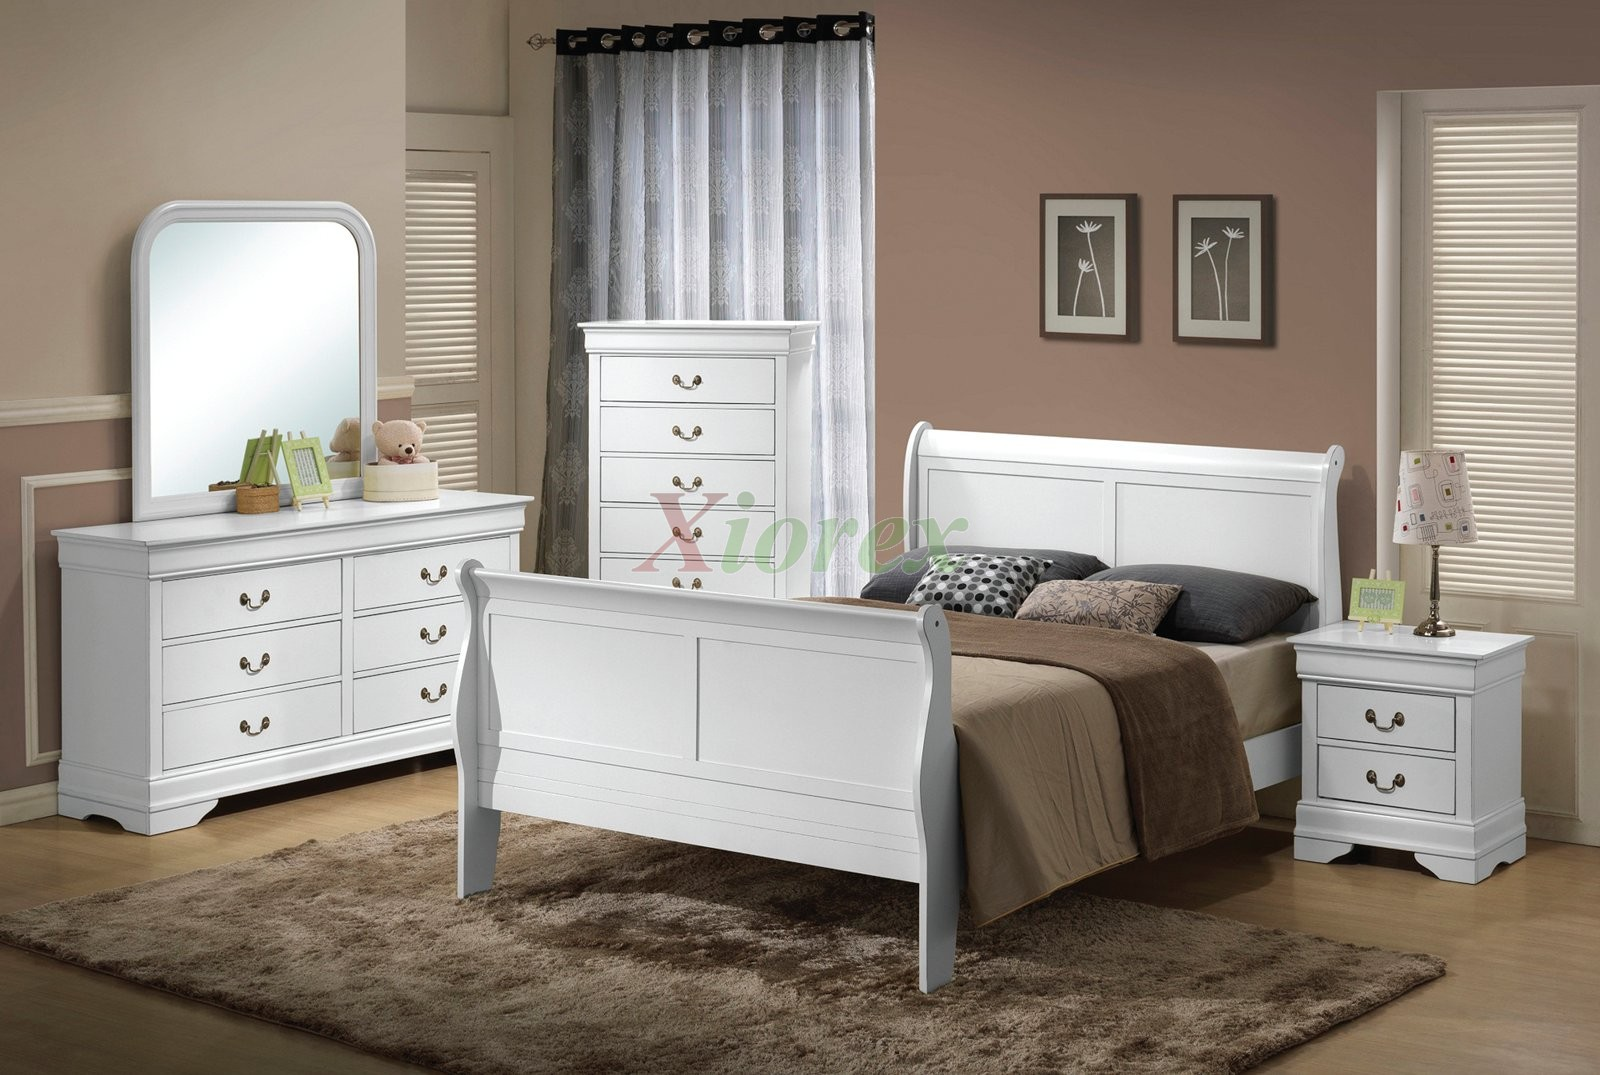 Semi Gloss White Bedroom Suite 170 W Sleigh Like Queen And King Beds Black Furniture